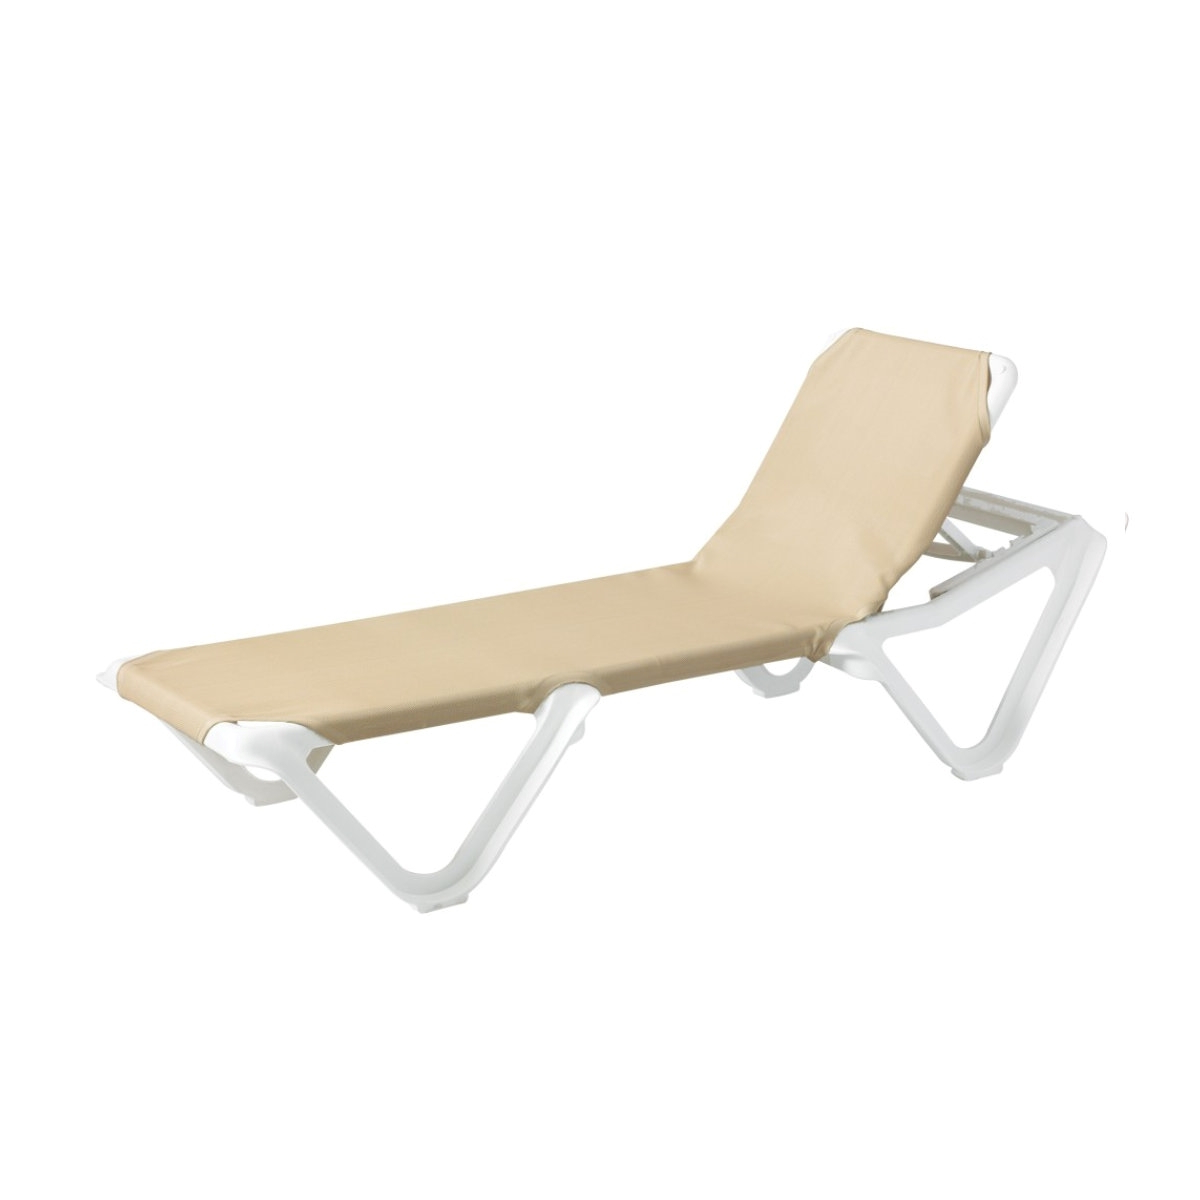 2019 Nautical Plastic Resin Sling Stackable Chaise Lounge, White Frame Pool  Furniture, 35 Lbs (View 1 of 25)